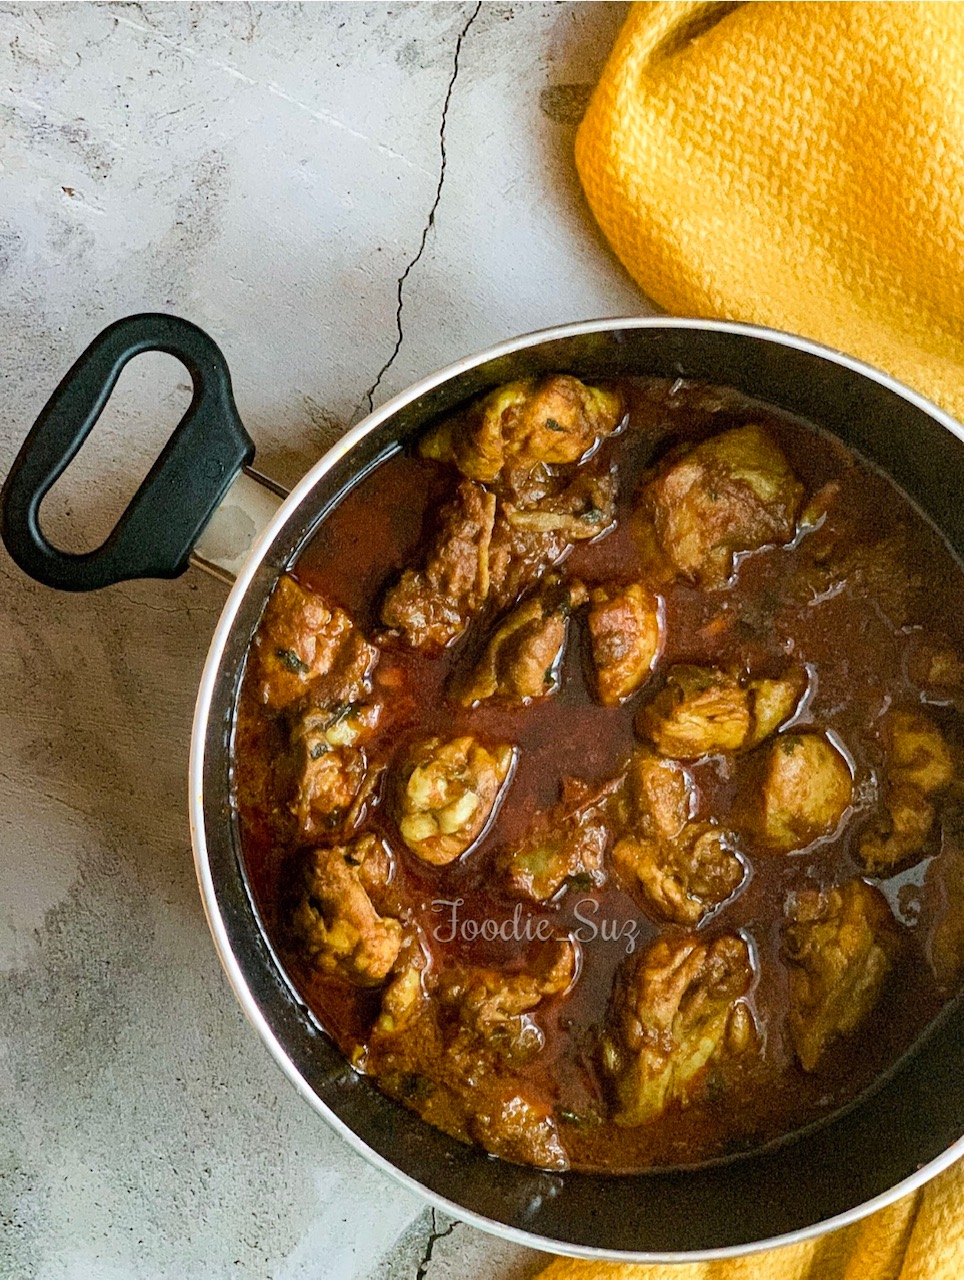 Bachelors Chicken Curry Recipe With Tips And Tricks Foodie Suz Recipes